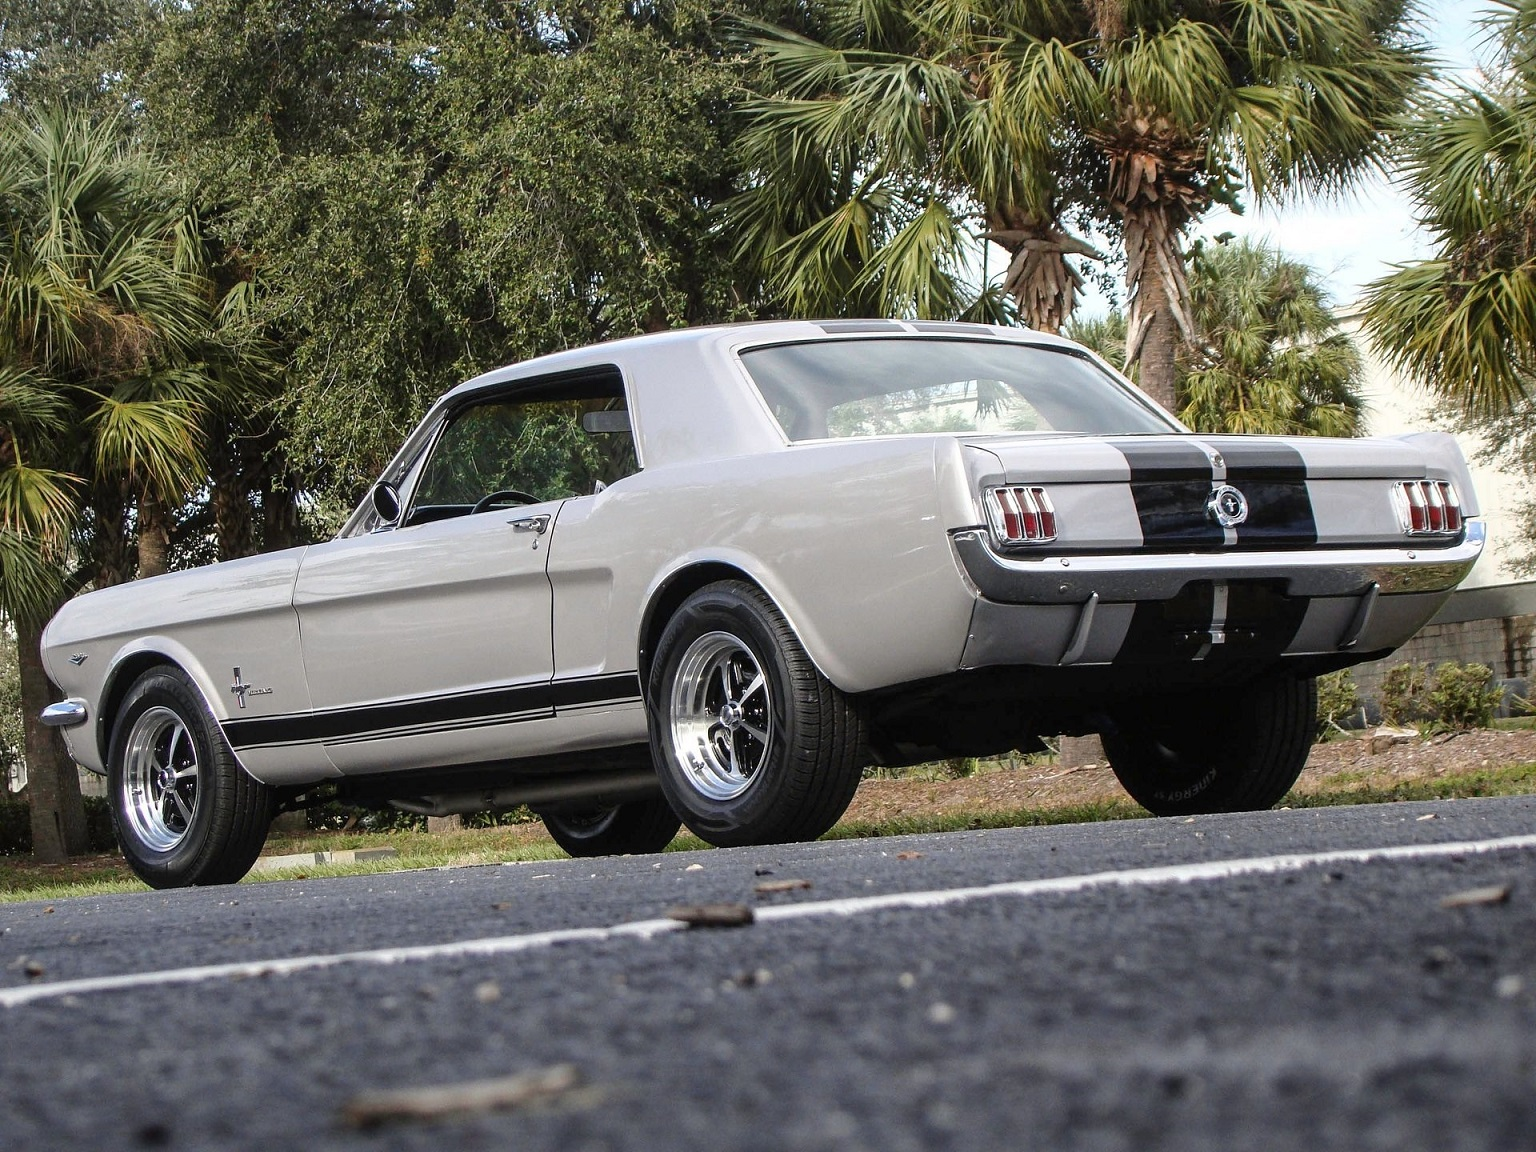 Mustang coupe 289 ci V8 Code C Automatique 196526 356€